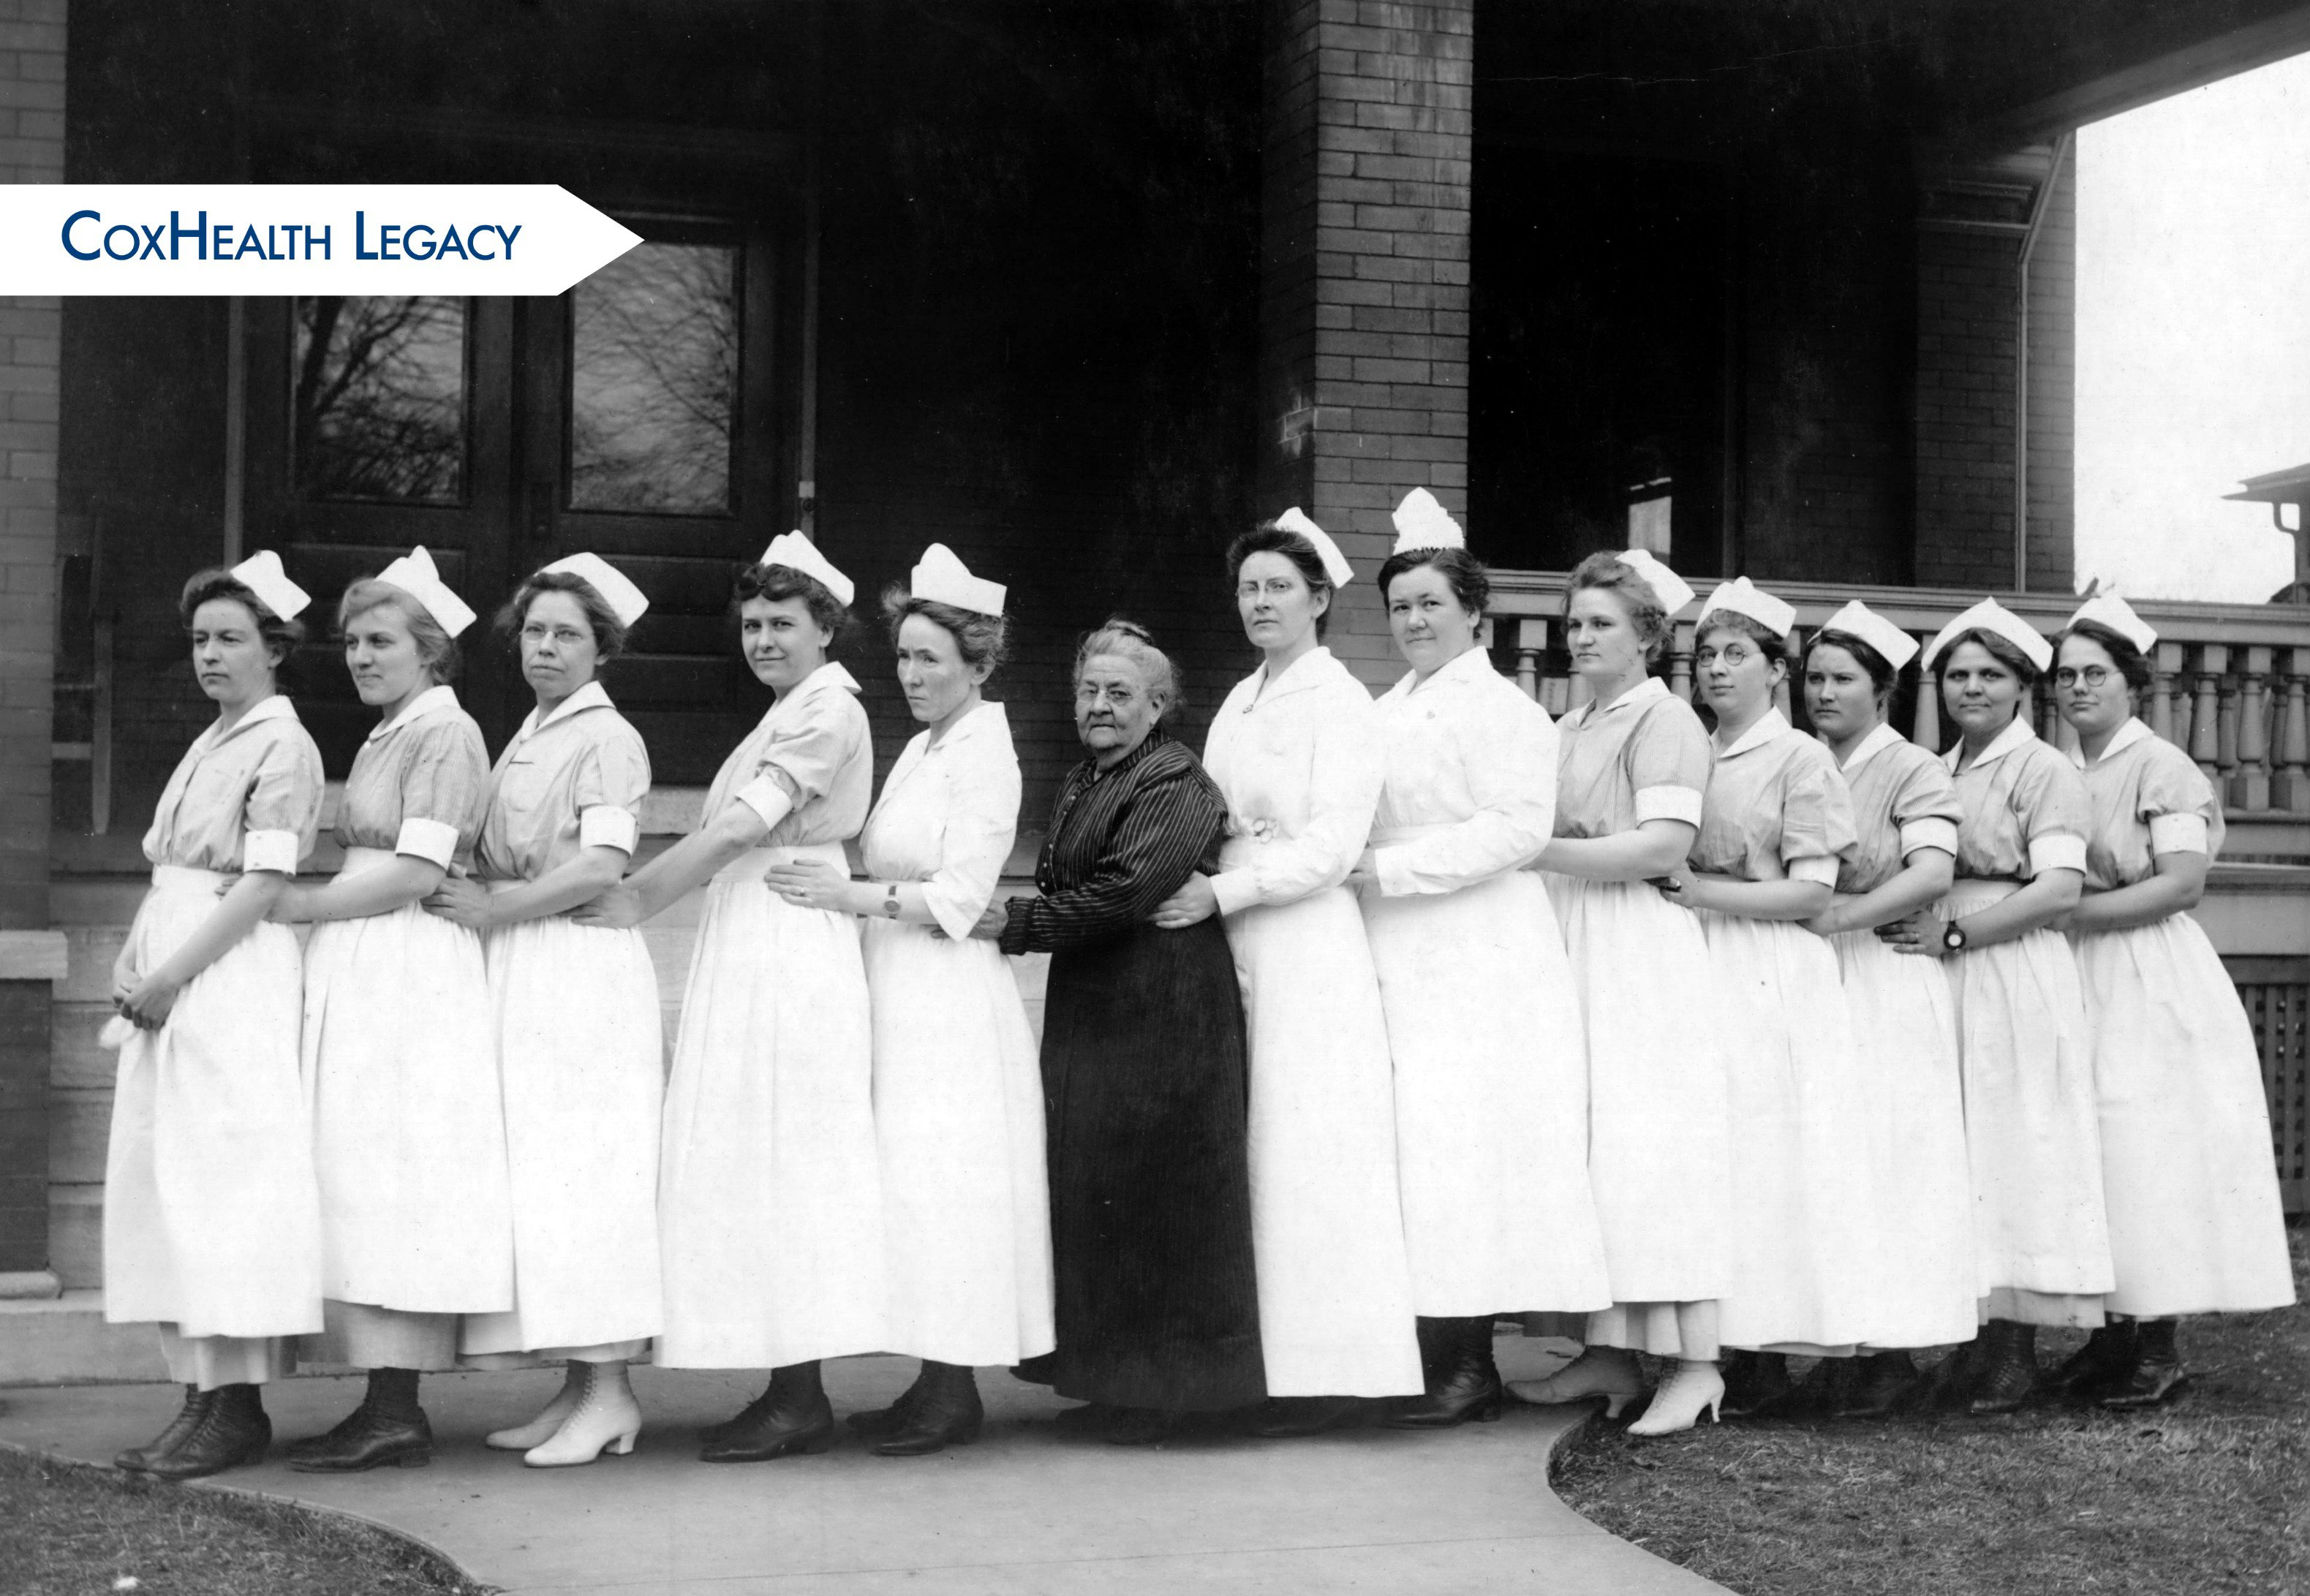 Ellen Burge, center, stands with a group of nurses.